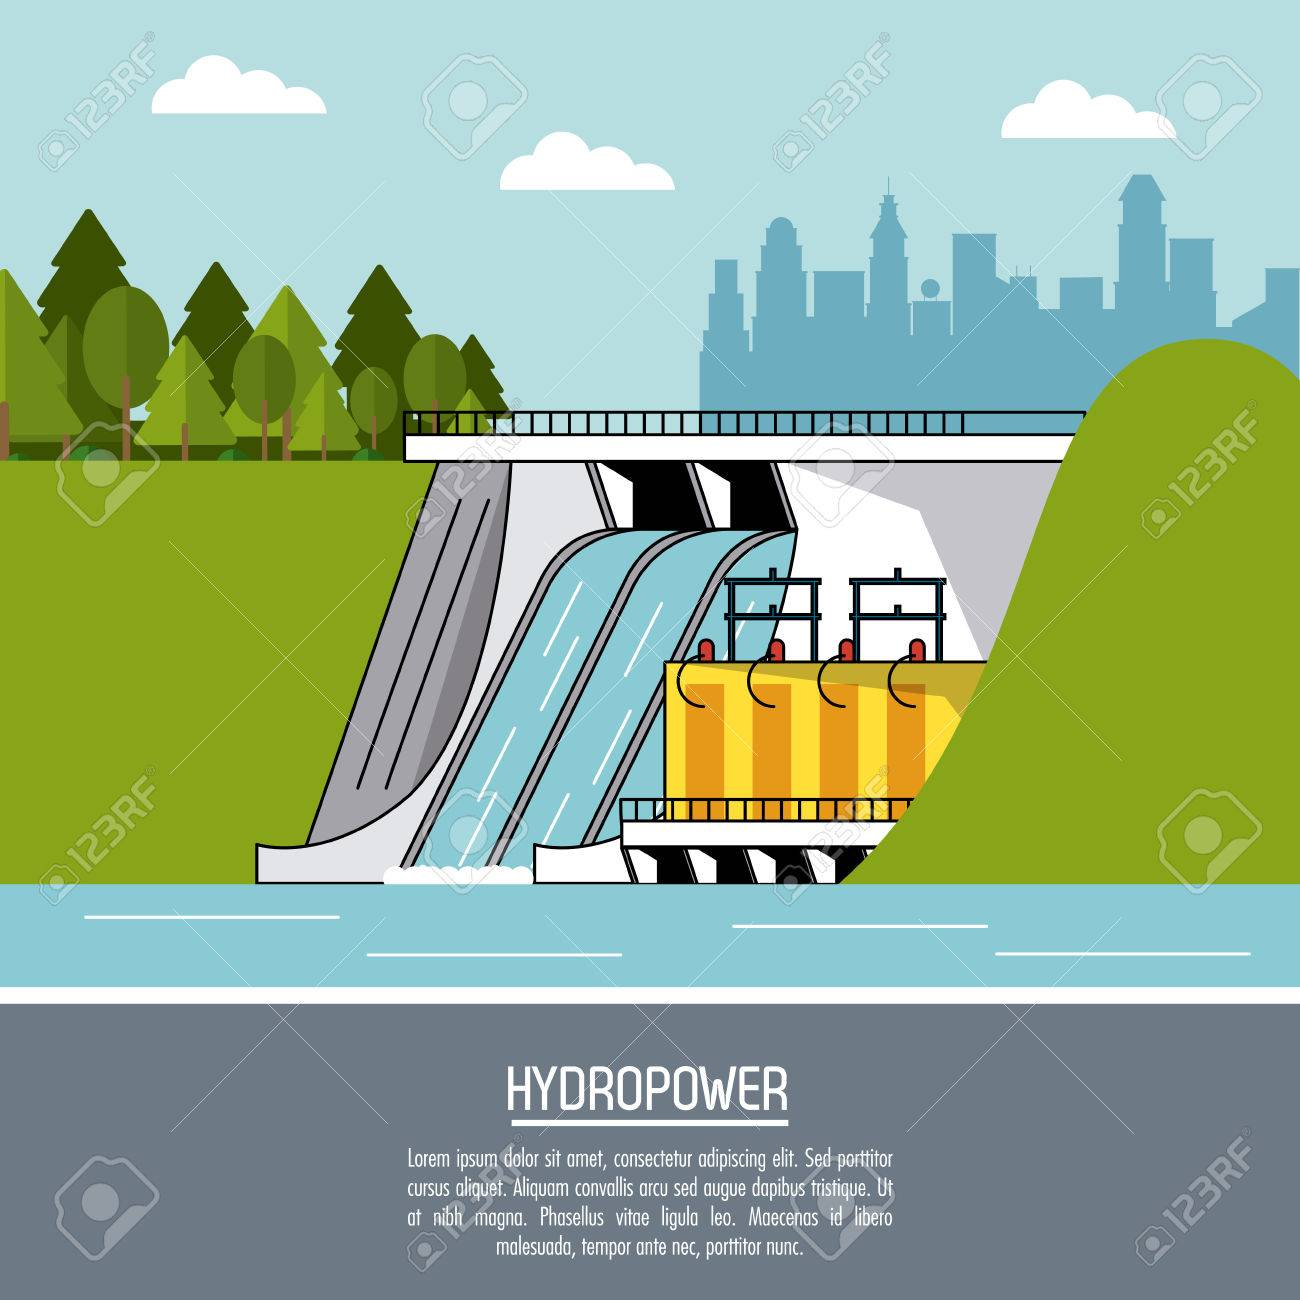 Color Landscape Background Hydropower Plant Renewable Energy Vector Hydro Power With Diagram Illustration 78851189